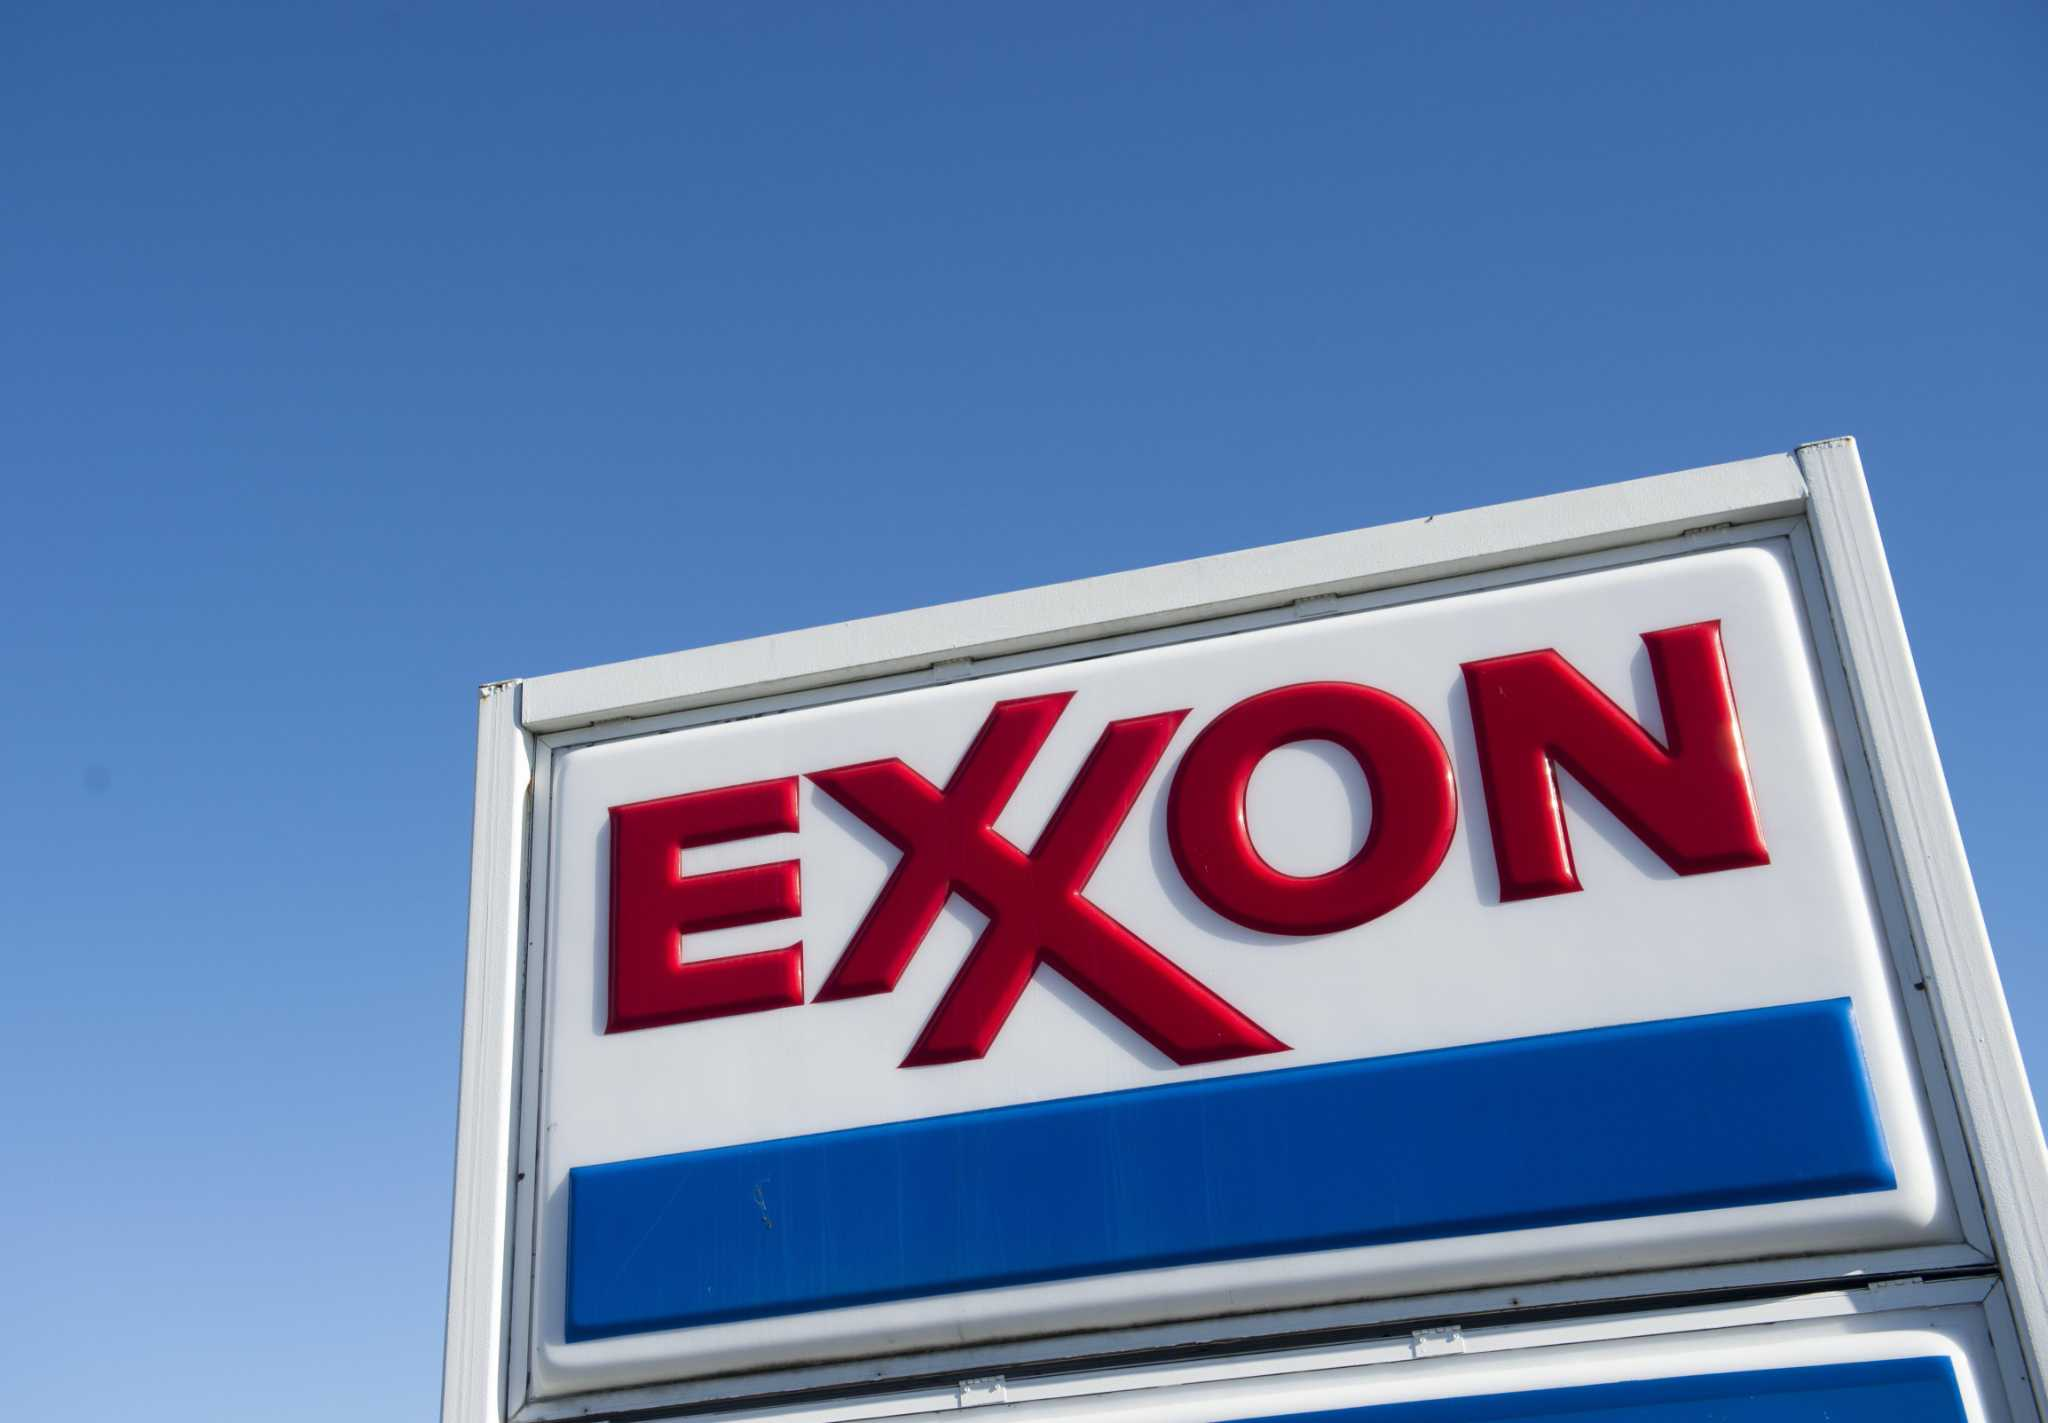 Exxon Mobil to stop contributing to its employee 401k plans